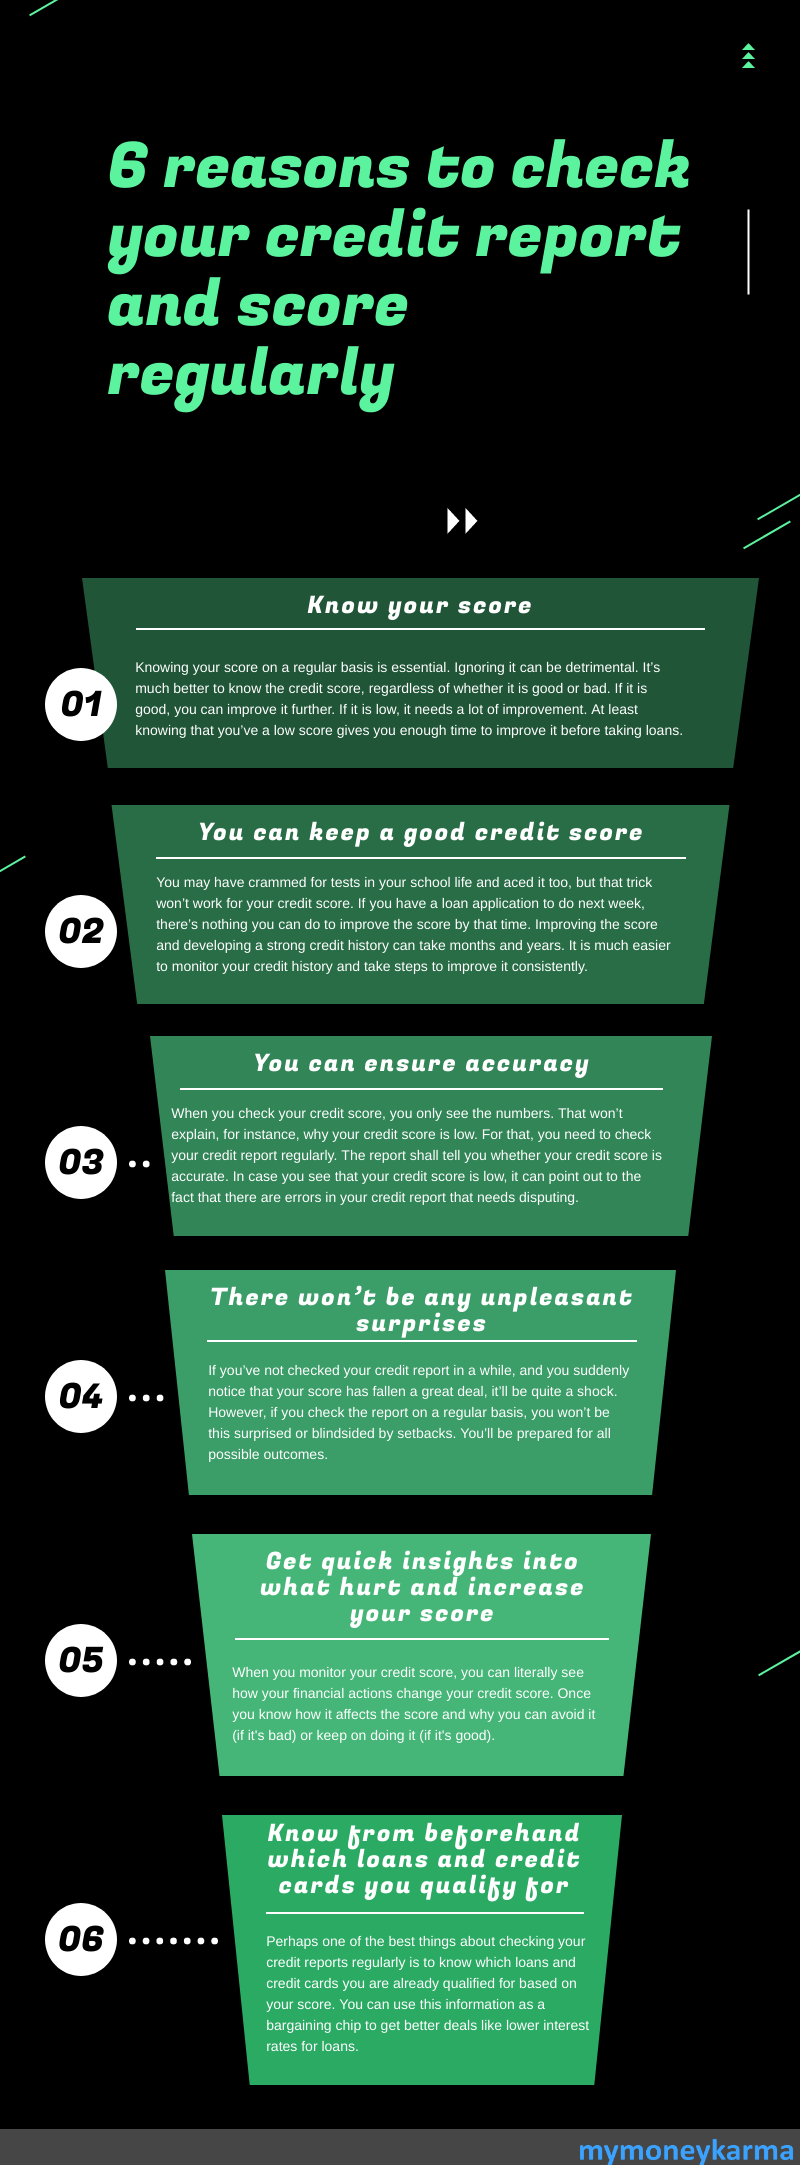 6 reaoons to check your credit report and score regularly 1. Know your score 2. you can Keep a good credit score 3.you can ensure accuracy 4. there won't be any unpleasant surprises 5. get quick insights into what hurt and increase your score 6. know from beforehand which loans and credit cards your qualify for